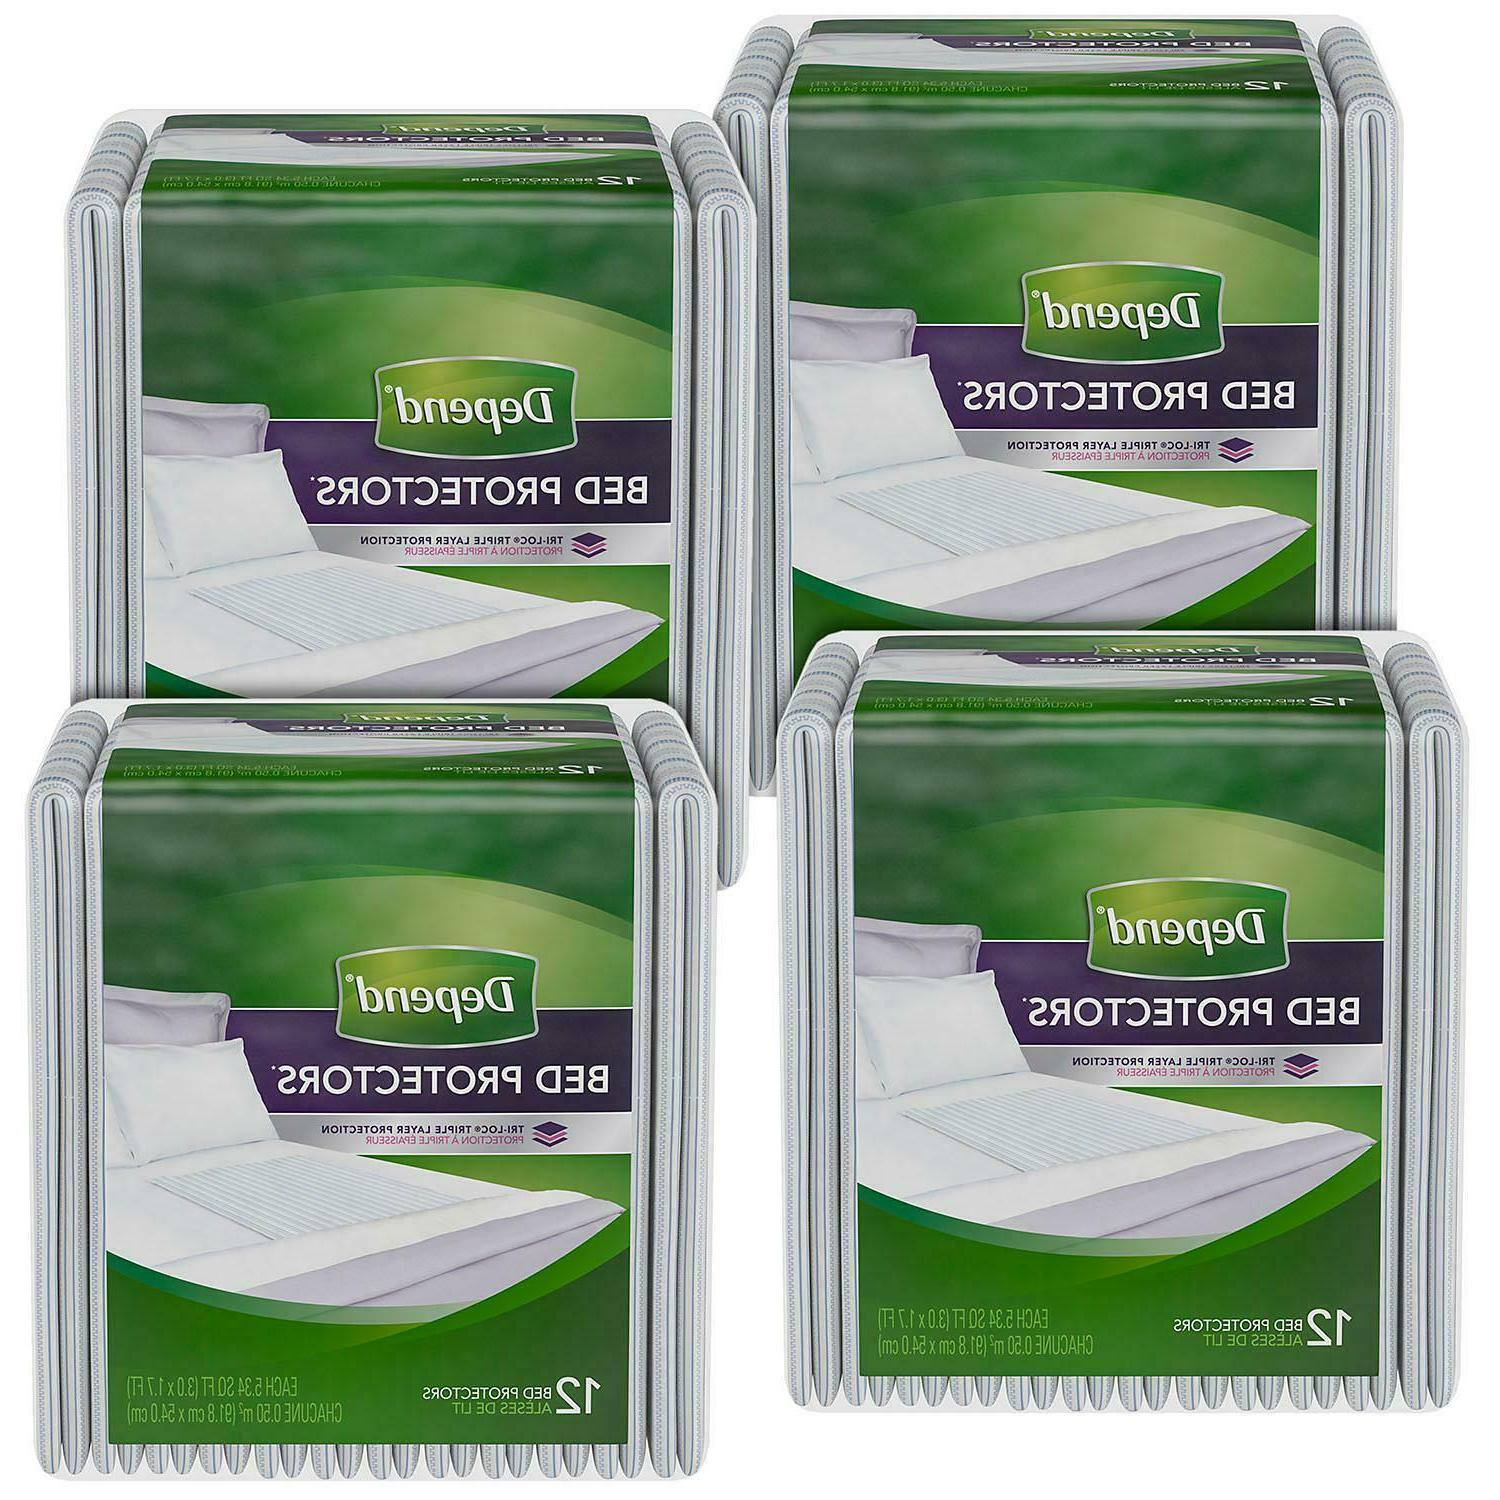 disposable waterproof bed pads overnight absorbency 48